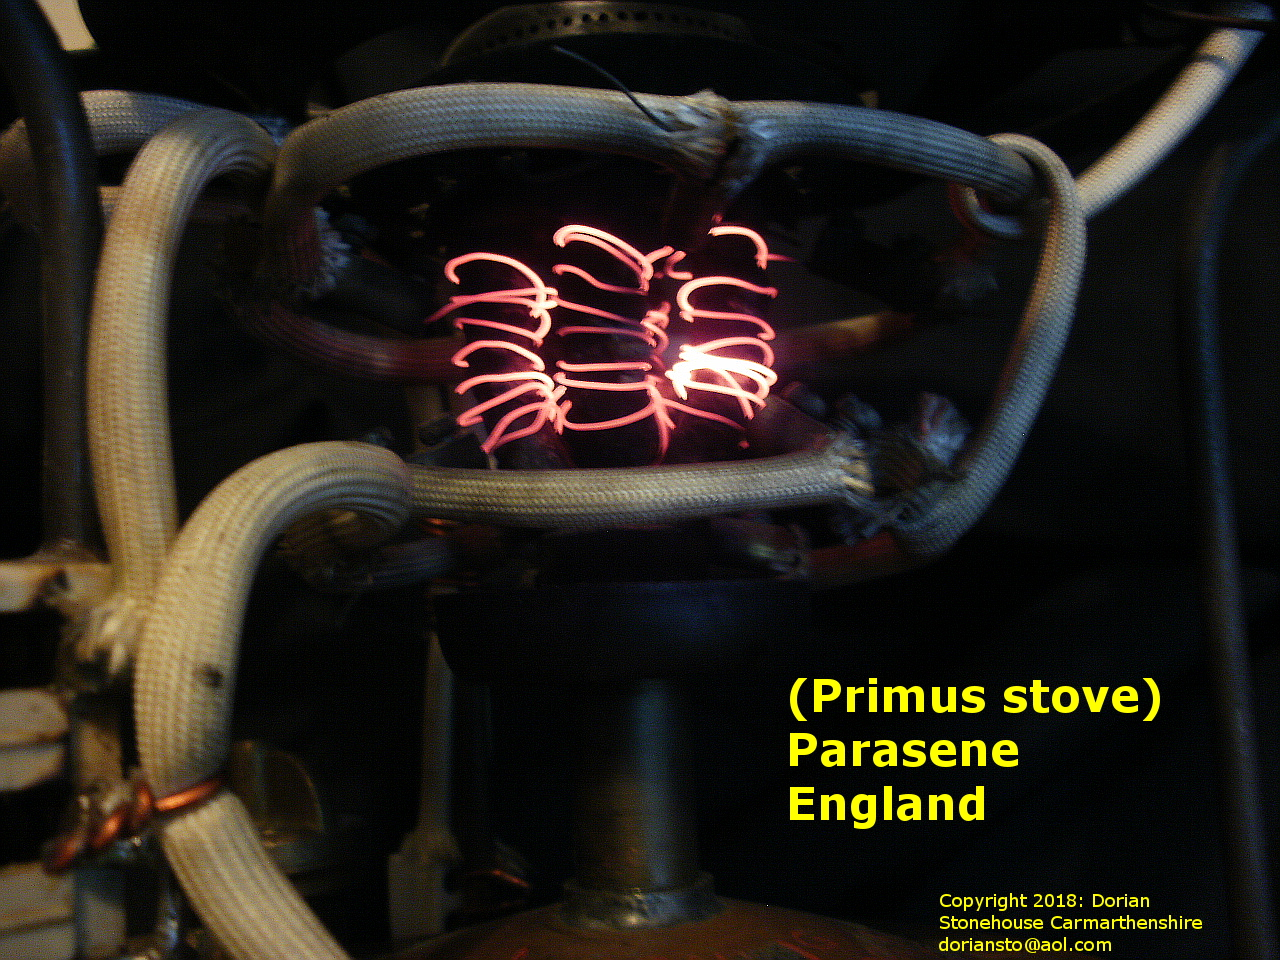 The Primus (Parasene) stove, with heating element fully alight